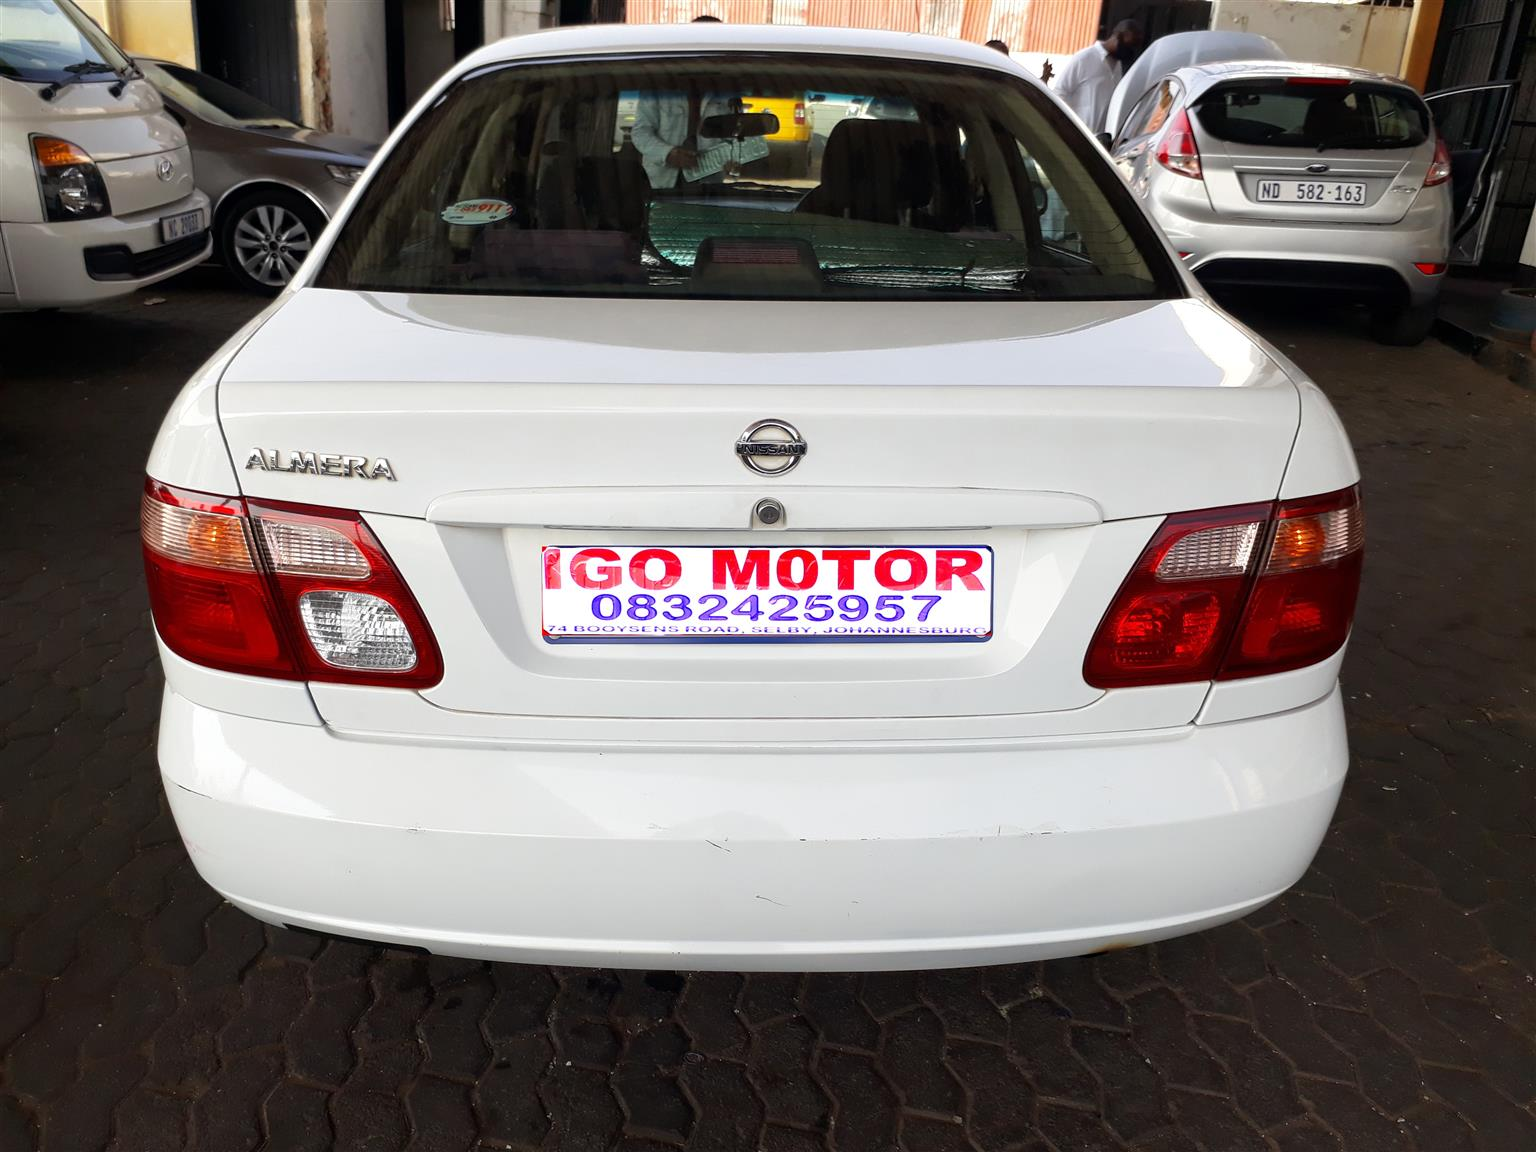 2005 Nissan Almera 1.6 Luxury automatic